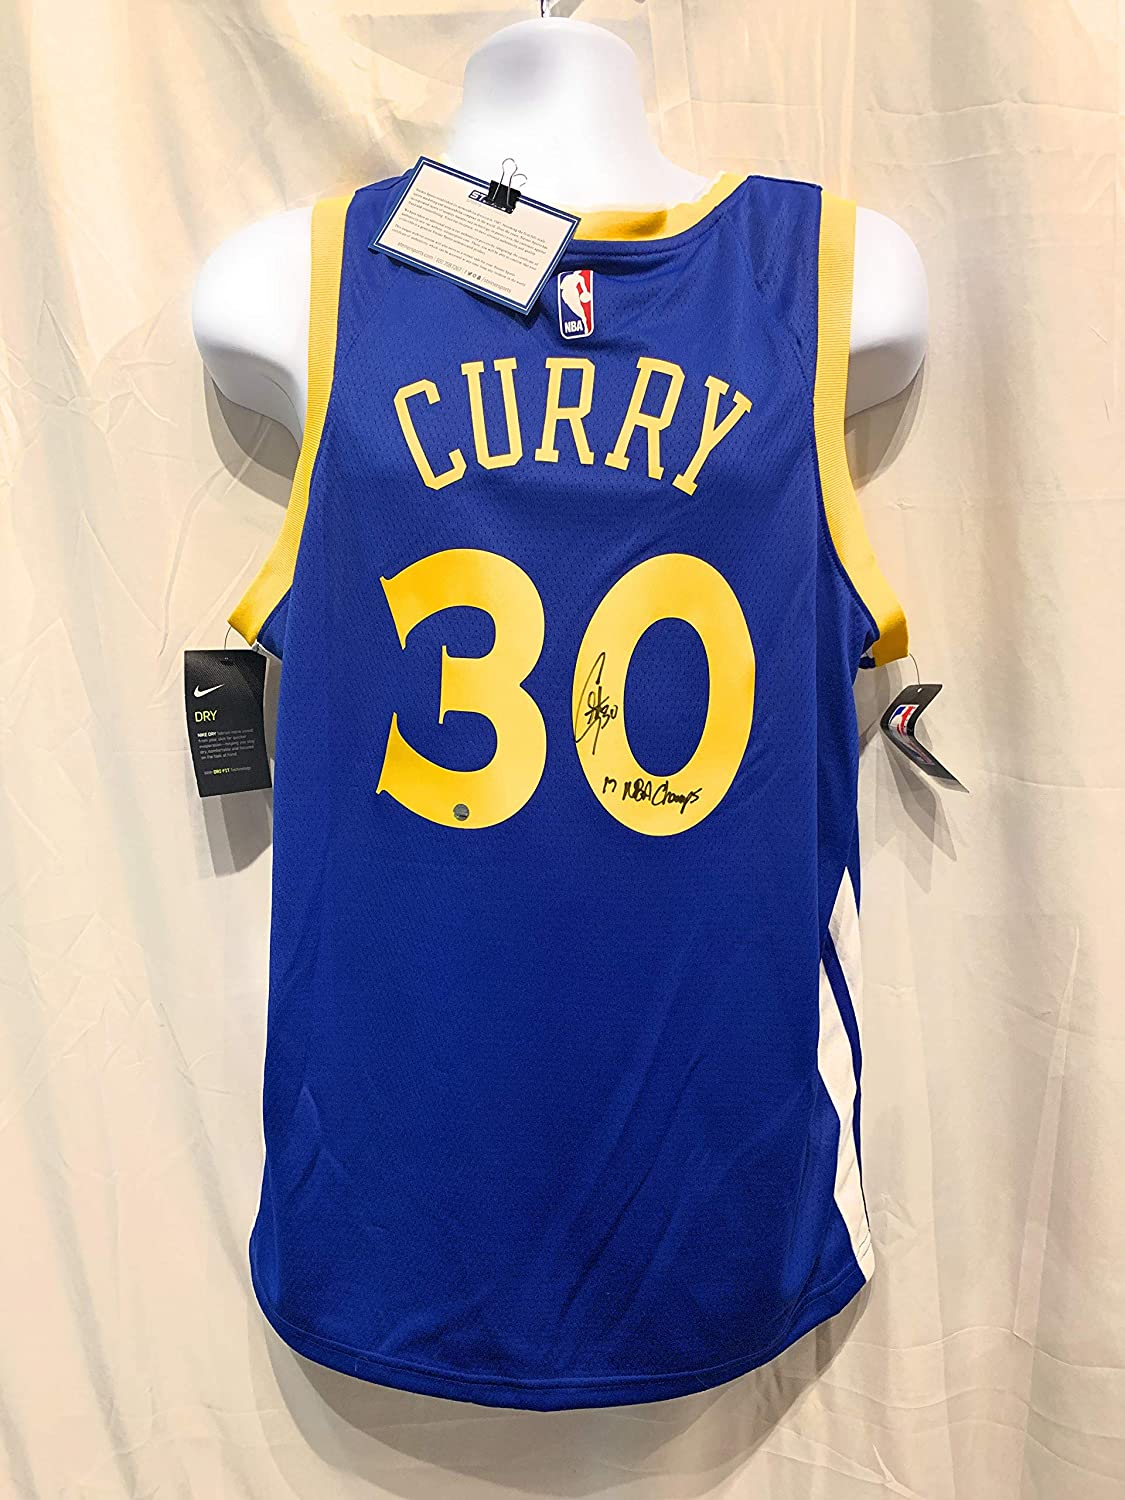 on sale 4fa6e f35fd Stephen Curry Steph Golden State Warriors Signed Autograph ...